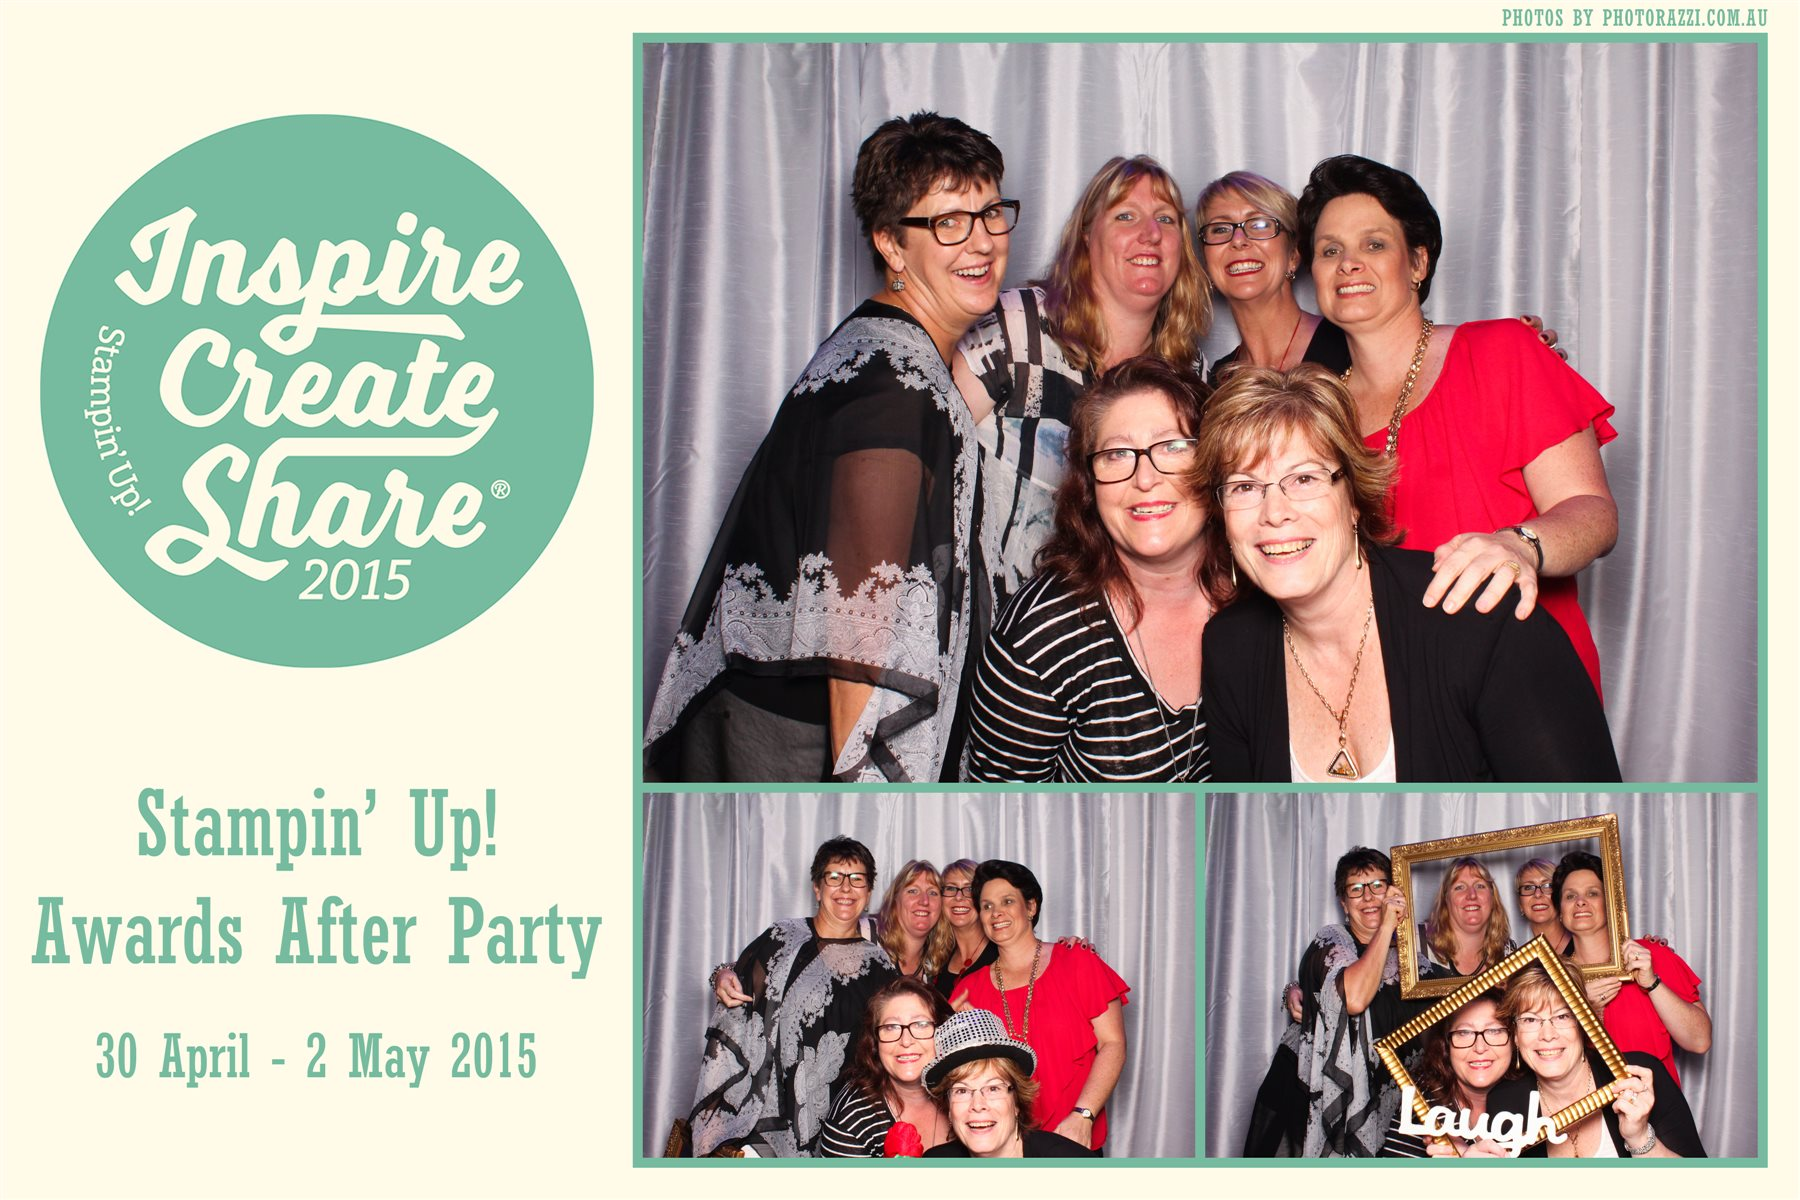 Exhibition Booth Hire Gold Coast : Stampin up awards after party photo gallery may